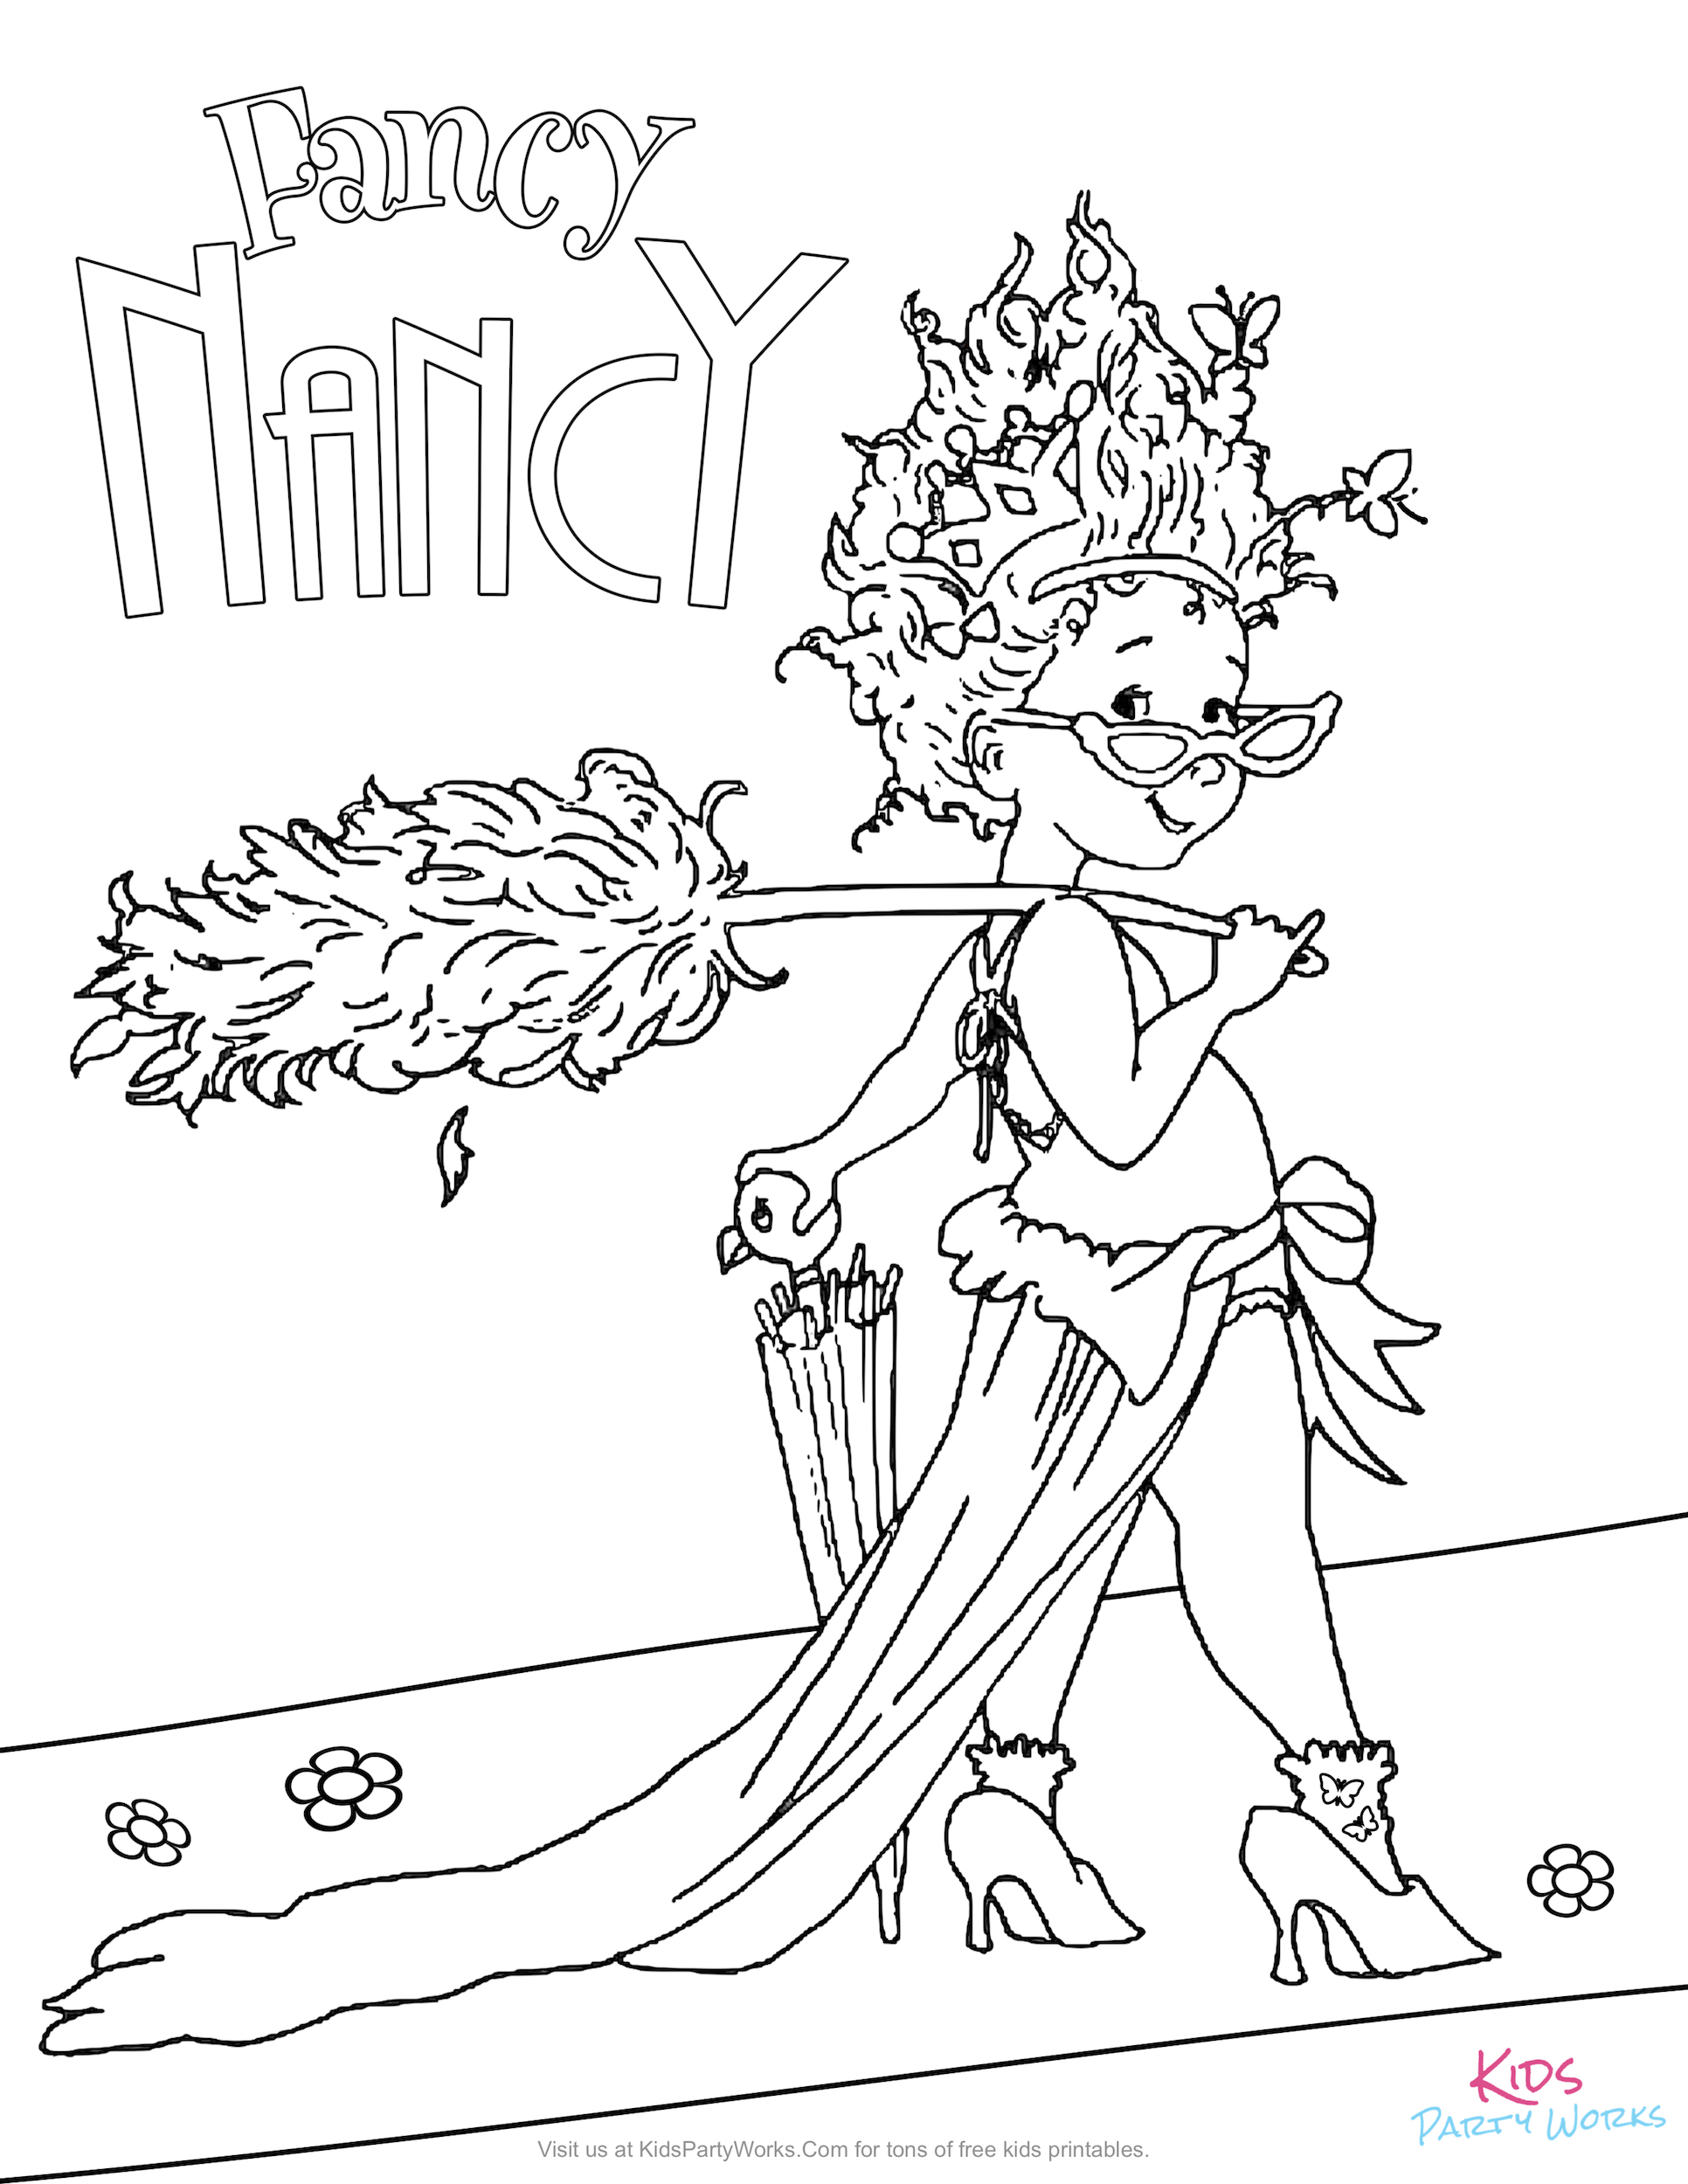 Free Fancy Nancy coloring page for kids to color from the new Disney Jr. show.